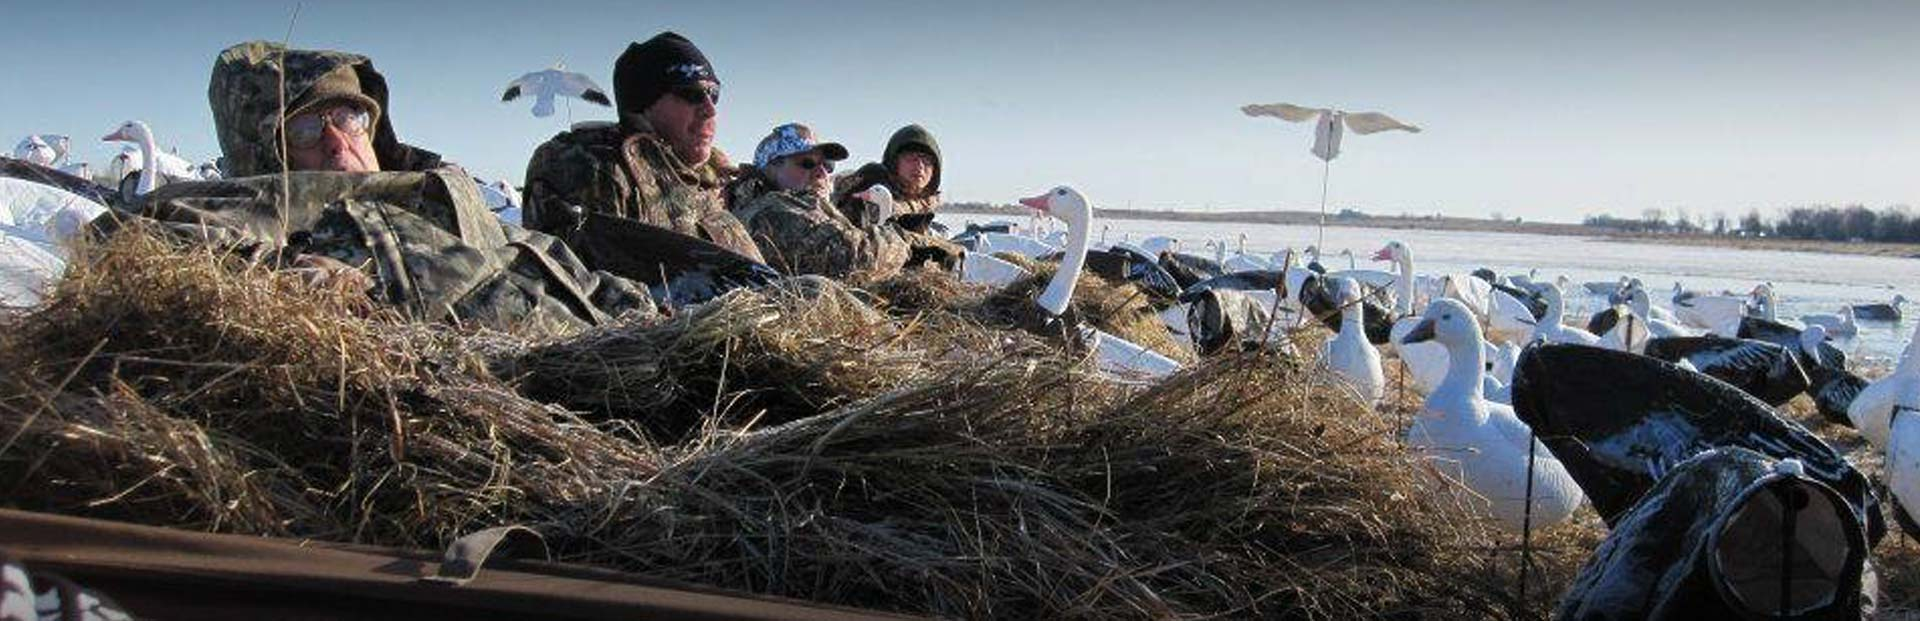 About Xmen Extreme Waterfowl Hunting